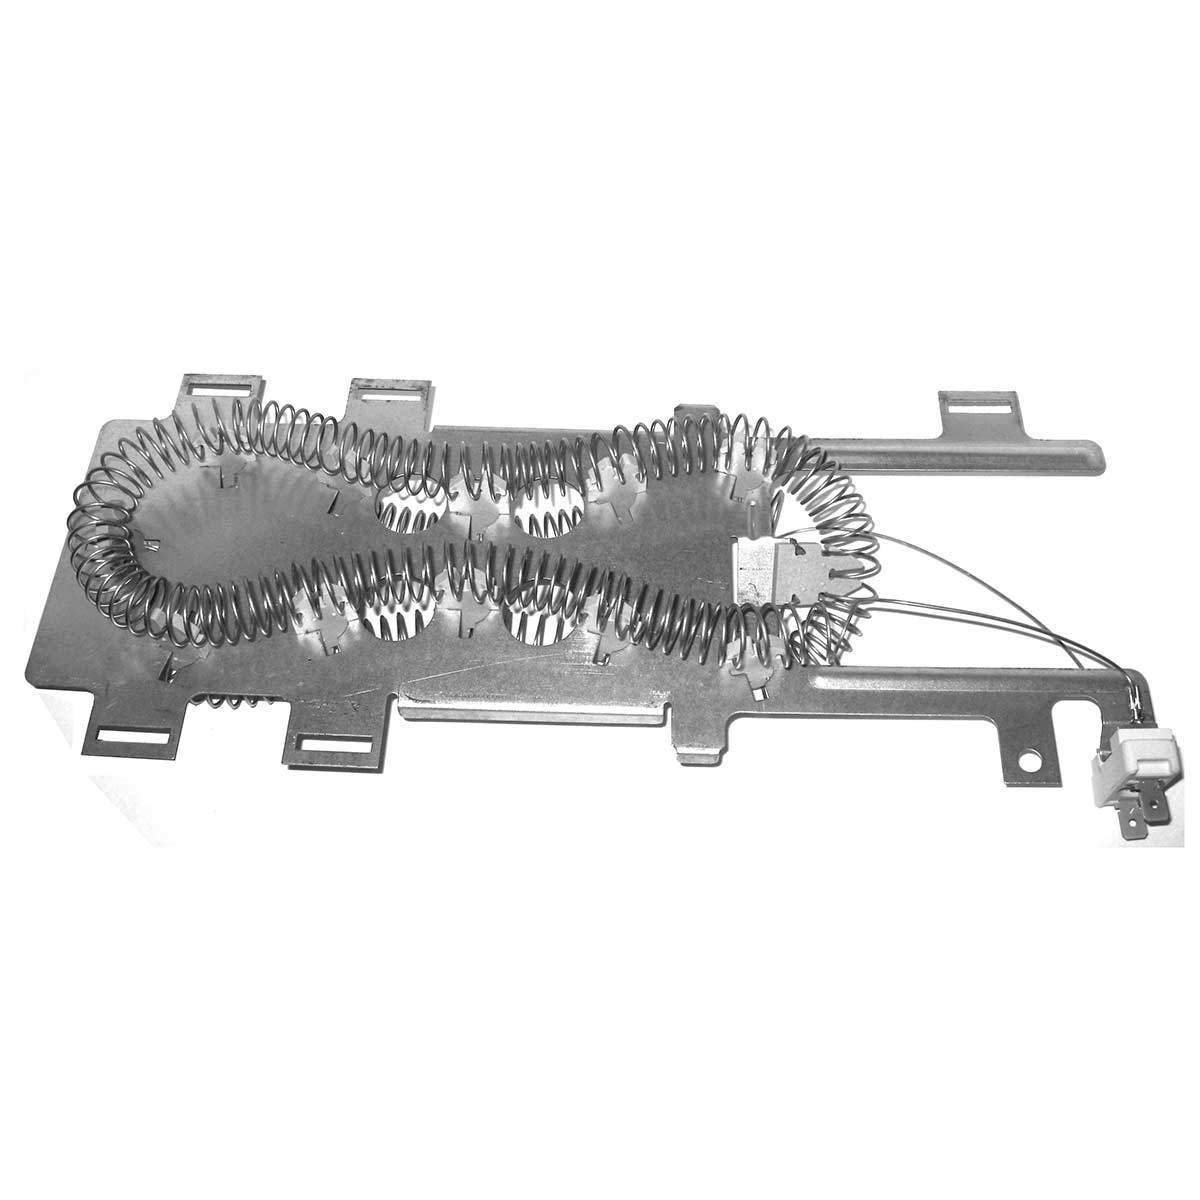 8544771 Dryer Heating Element for Whirlpool Kenmore Maytag Dryers Parts Replaces PS990361 AP3866035 by AUKO